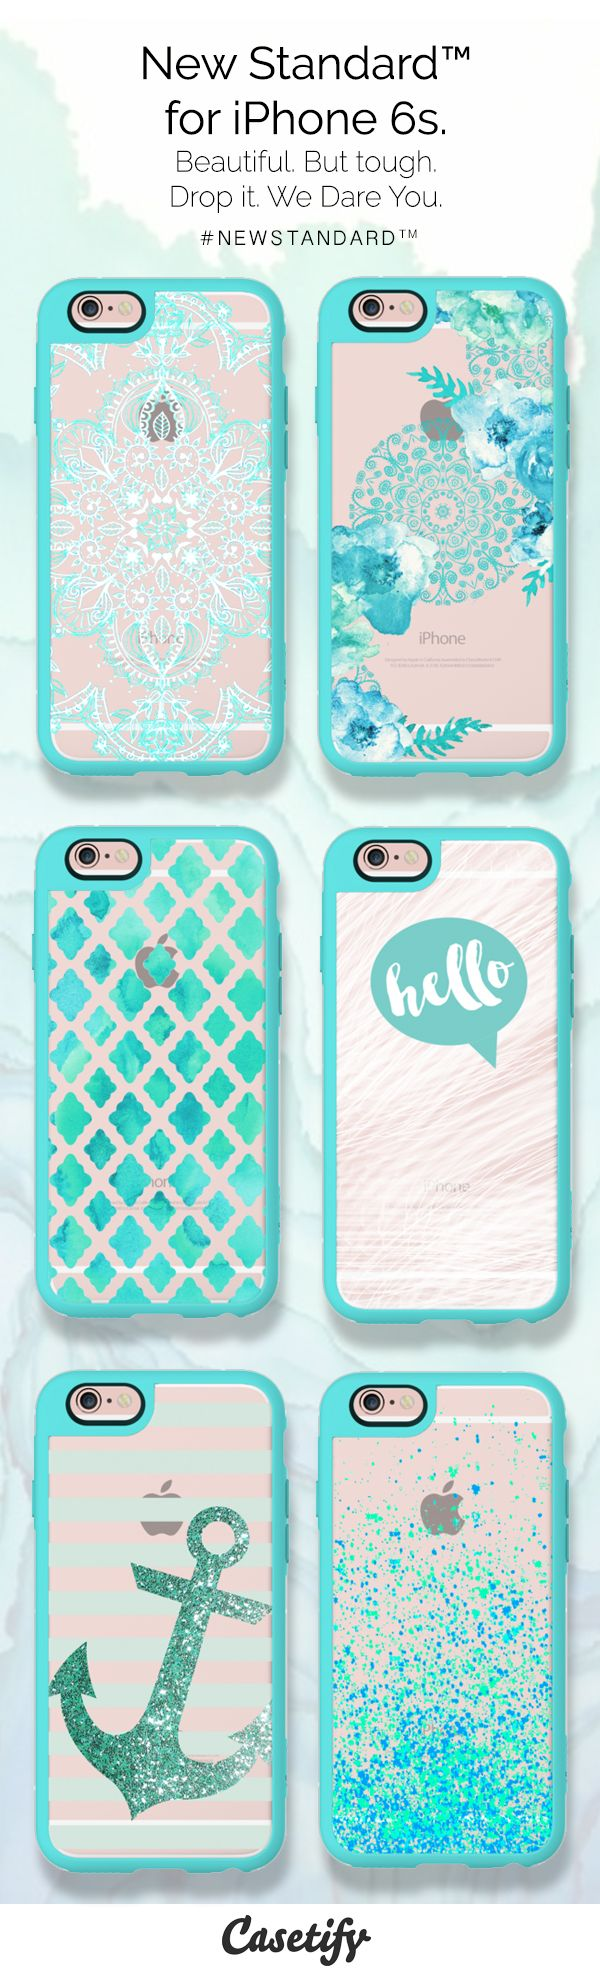 Everything is better teal. Tap to  pre-order this #NewStandard™ phonecases-http://www.casetify.com/artworks/Emcijbe6GS